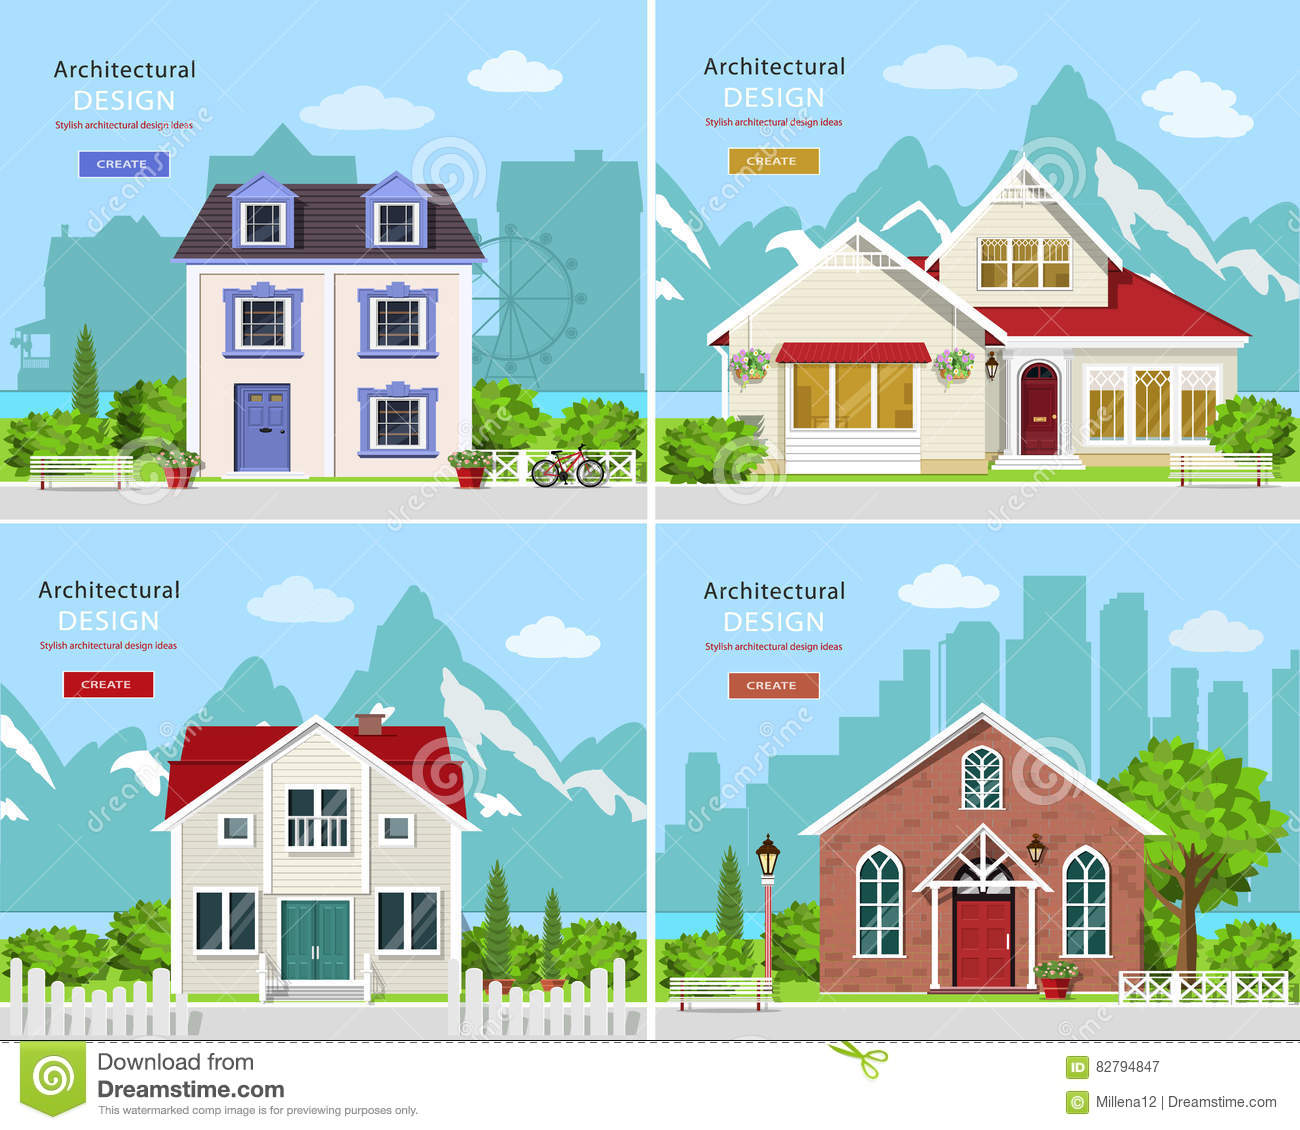 Cute graphic private houses with city landscape and stylish houses with rocky mountains backdrop.